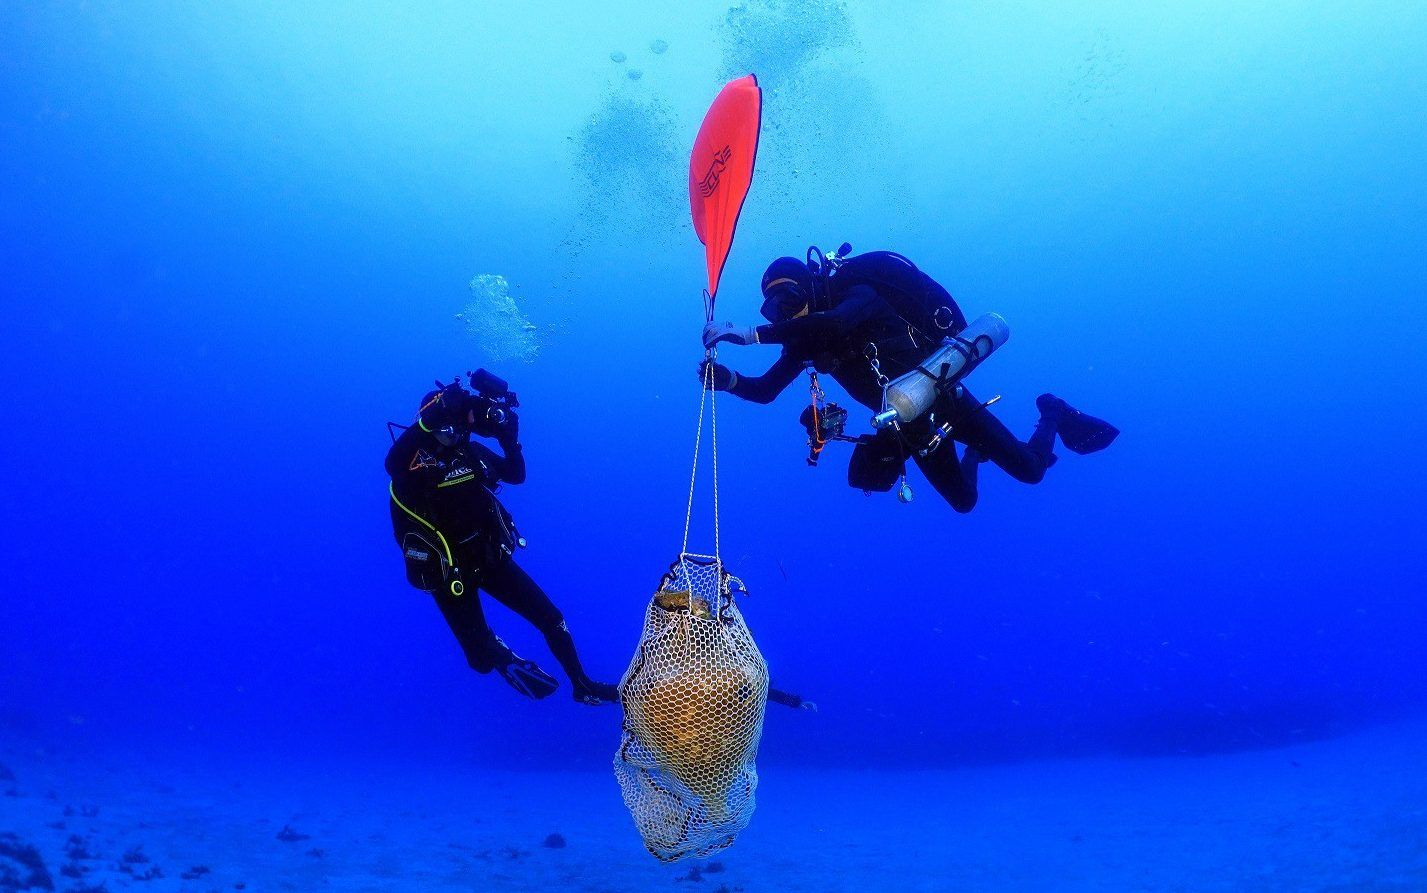 Marine archeologists discover ancient shipwrecks off island in the Aegean